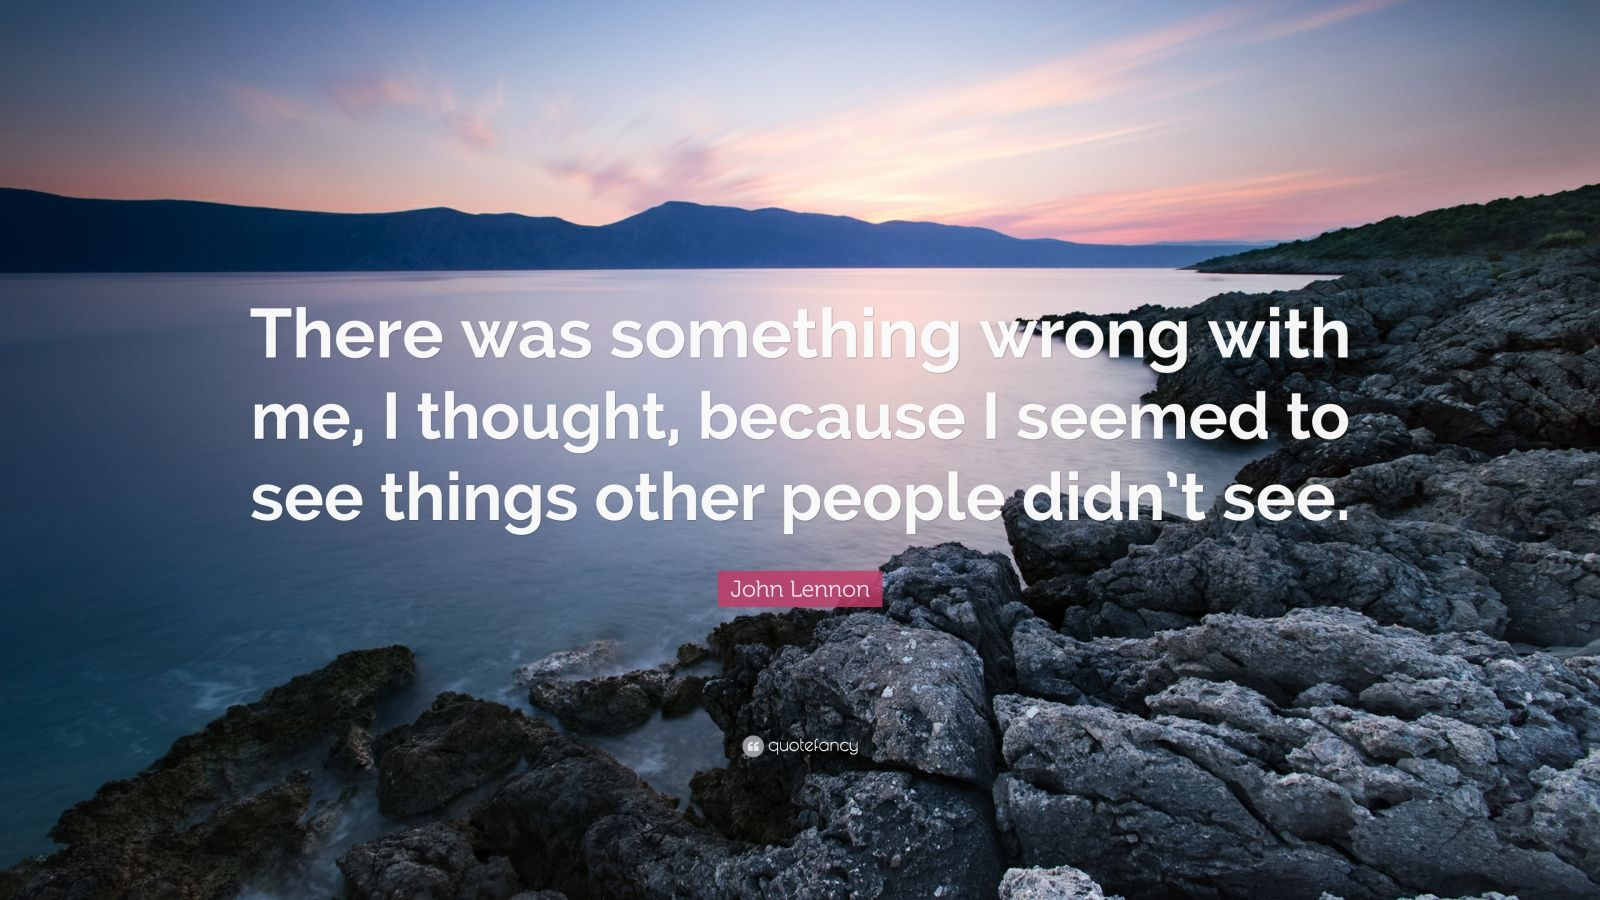 """John Lennon Quote: """"There was something wrong with me, I thought, because I seemed to see things other people didn't see."""""""